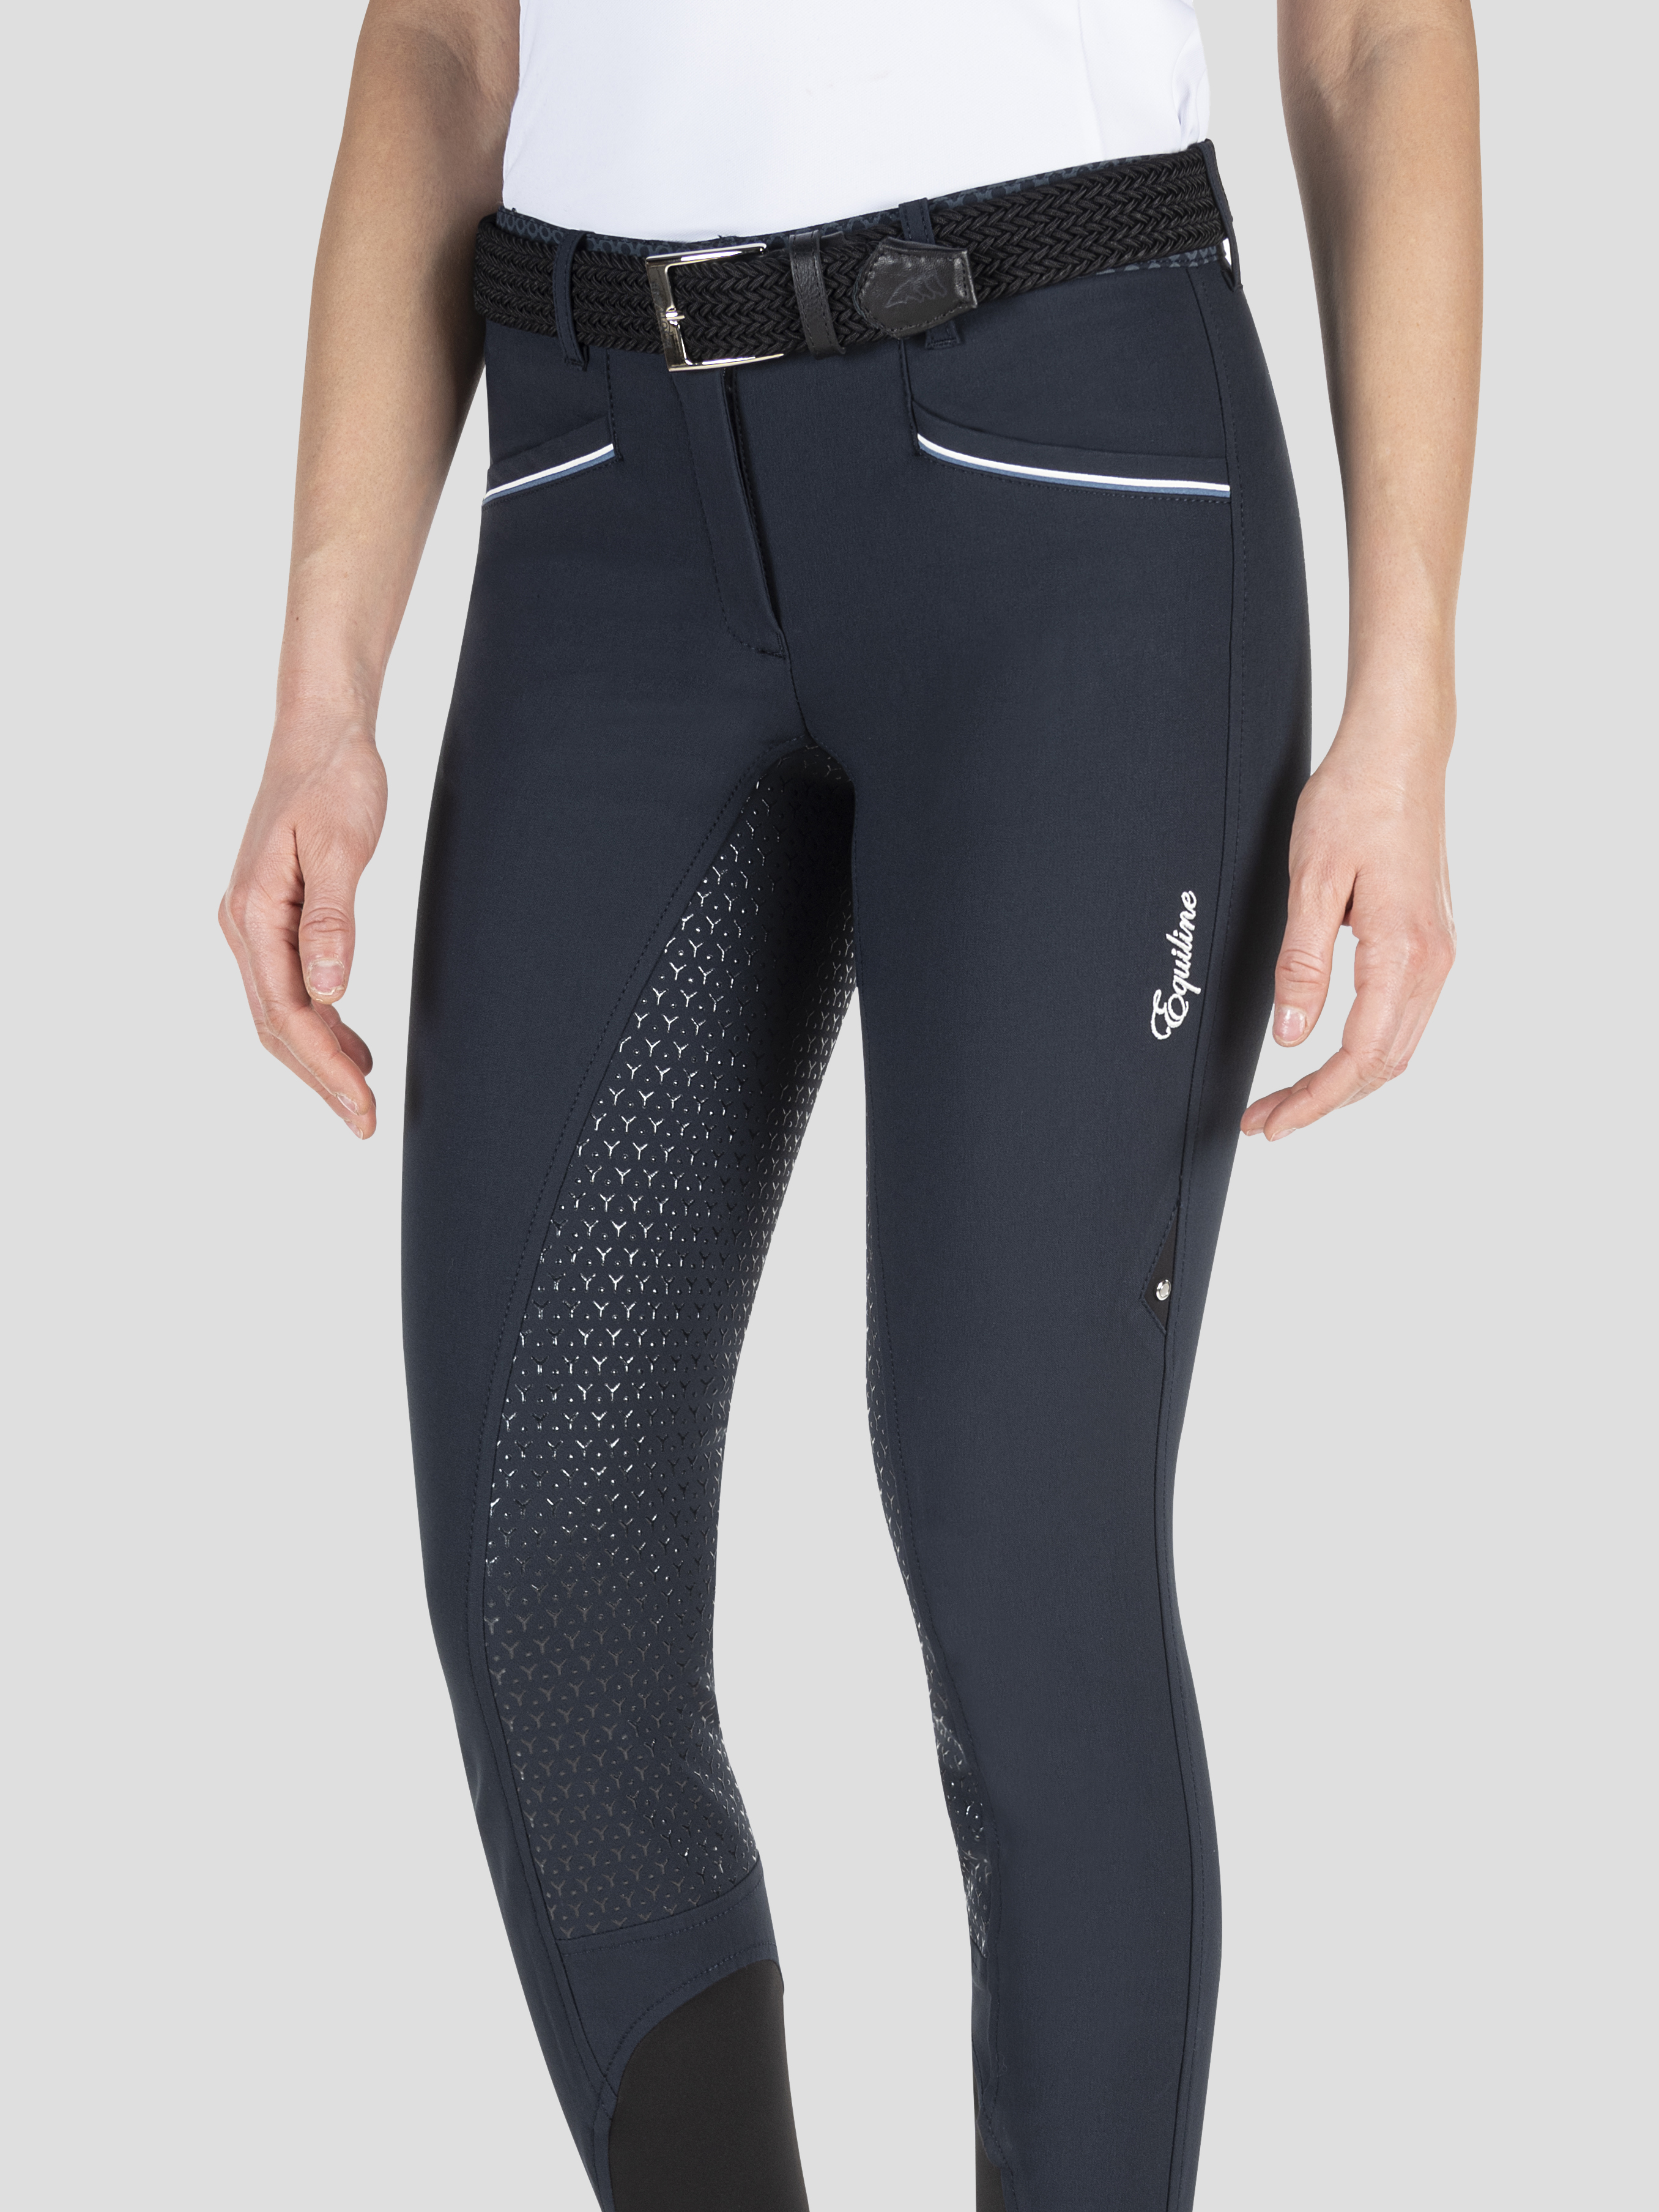 ESHA WOMEN'S FULL GRIP BREECHES WITH DOUBLE PIPING 1